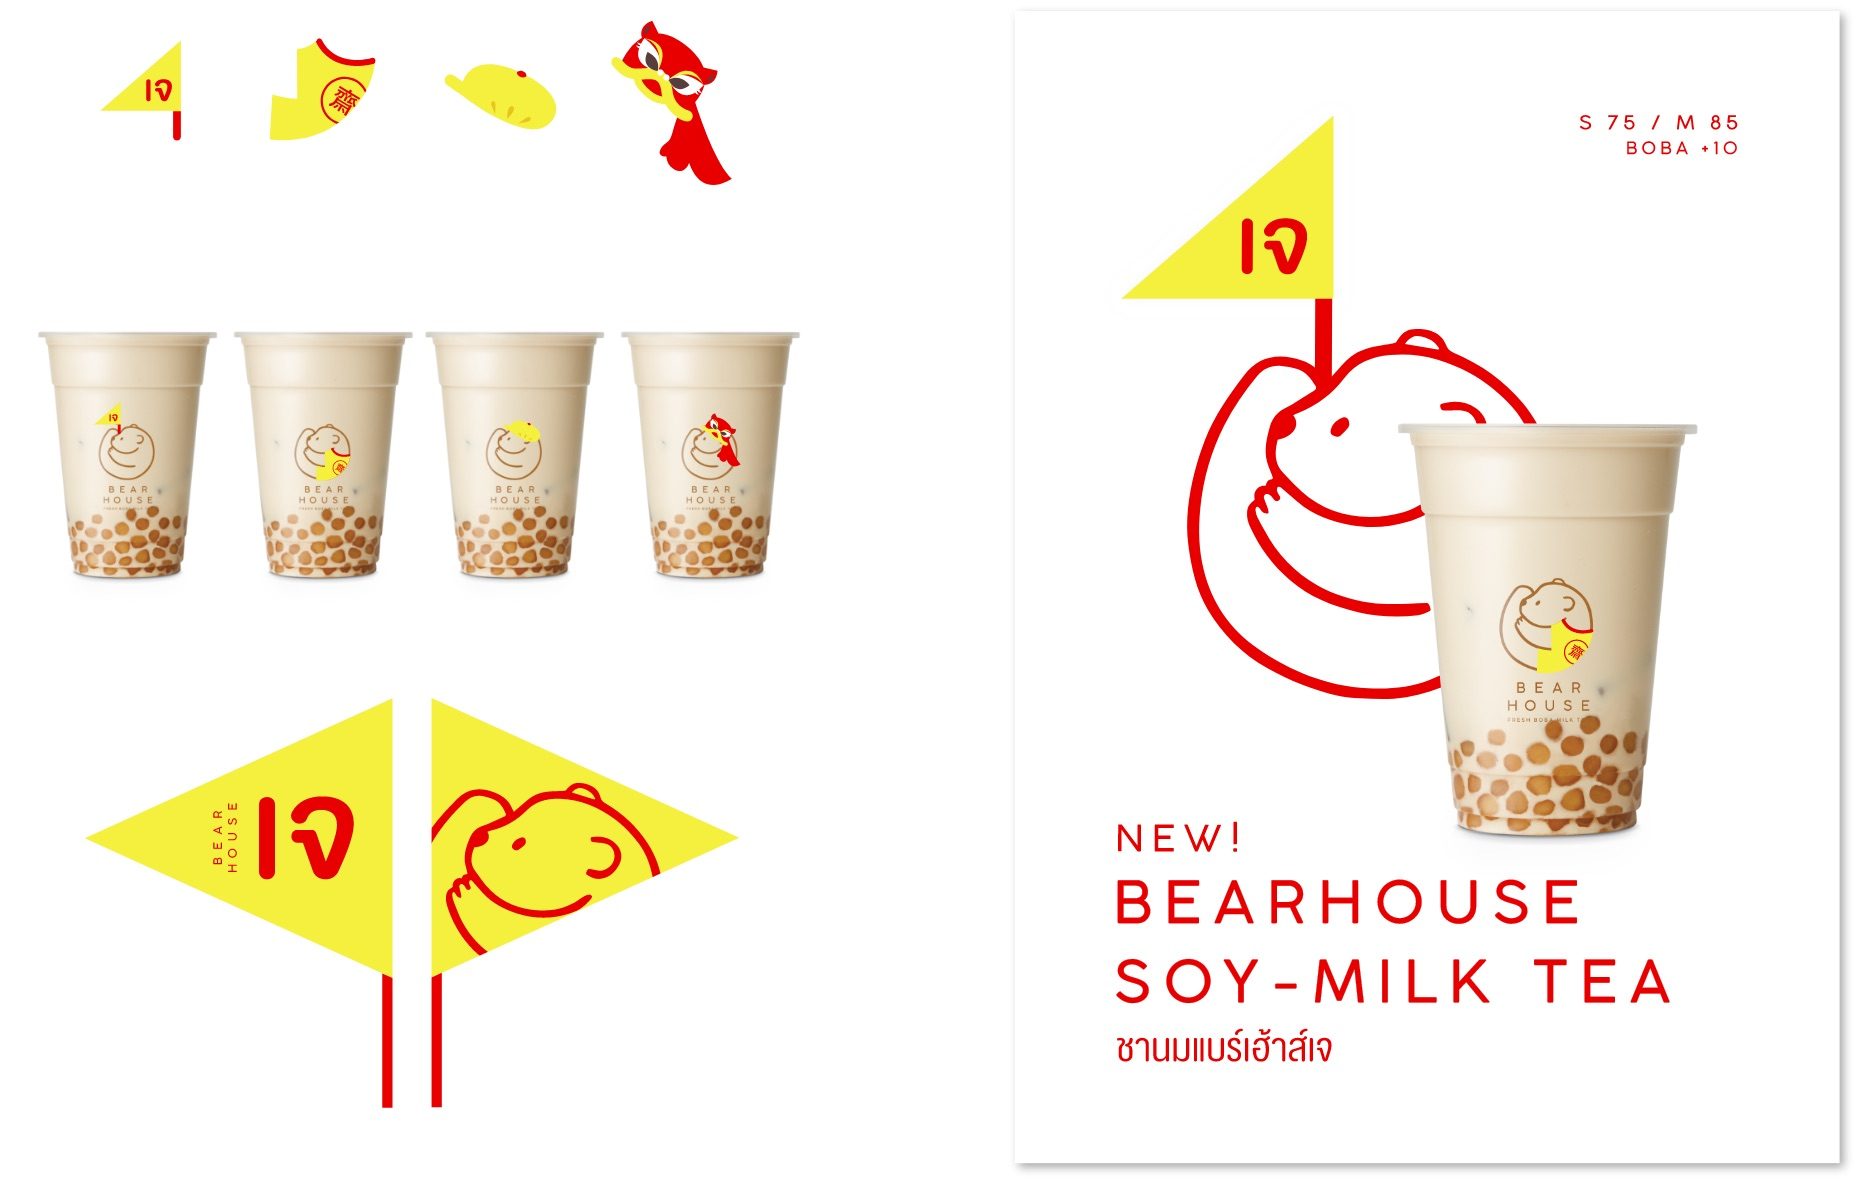 Bearhouse yindee design7